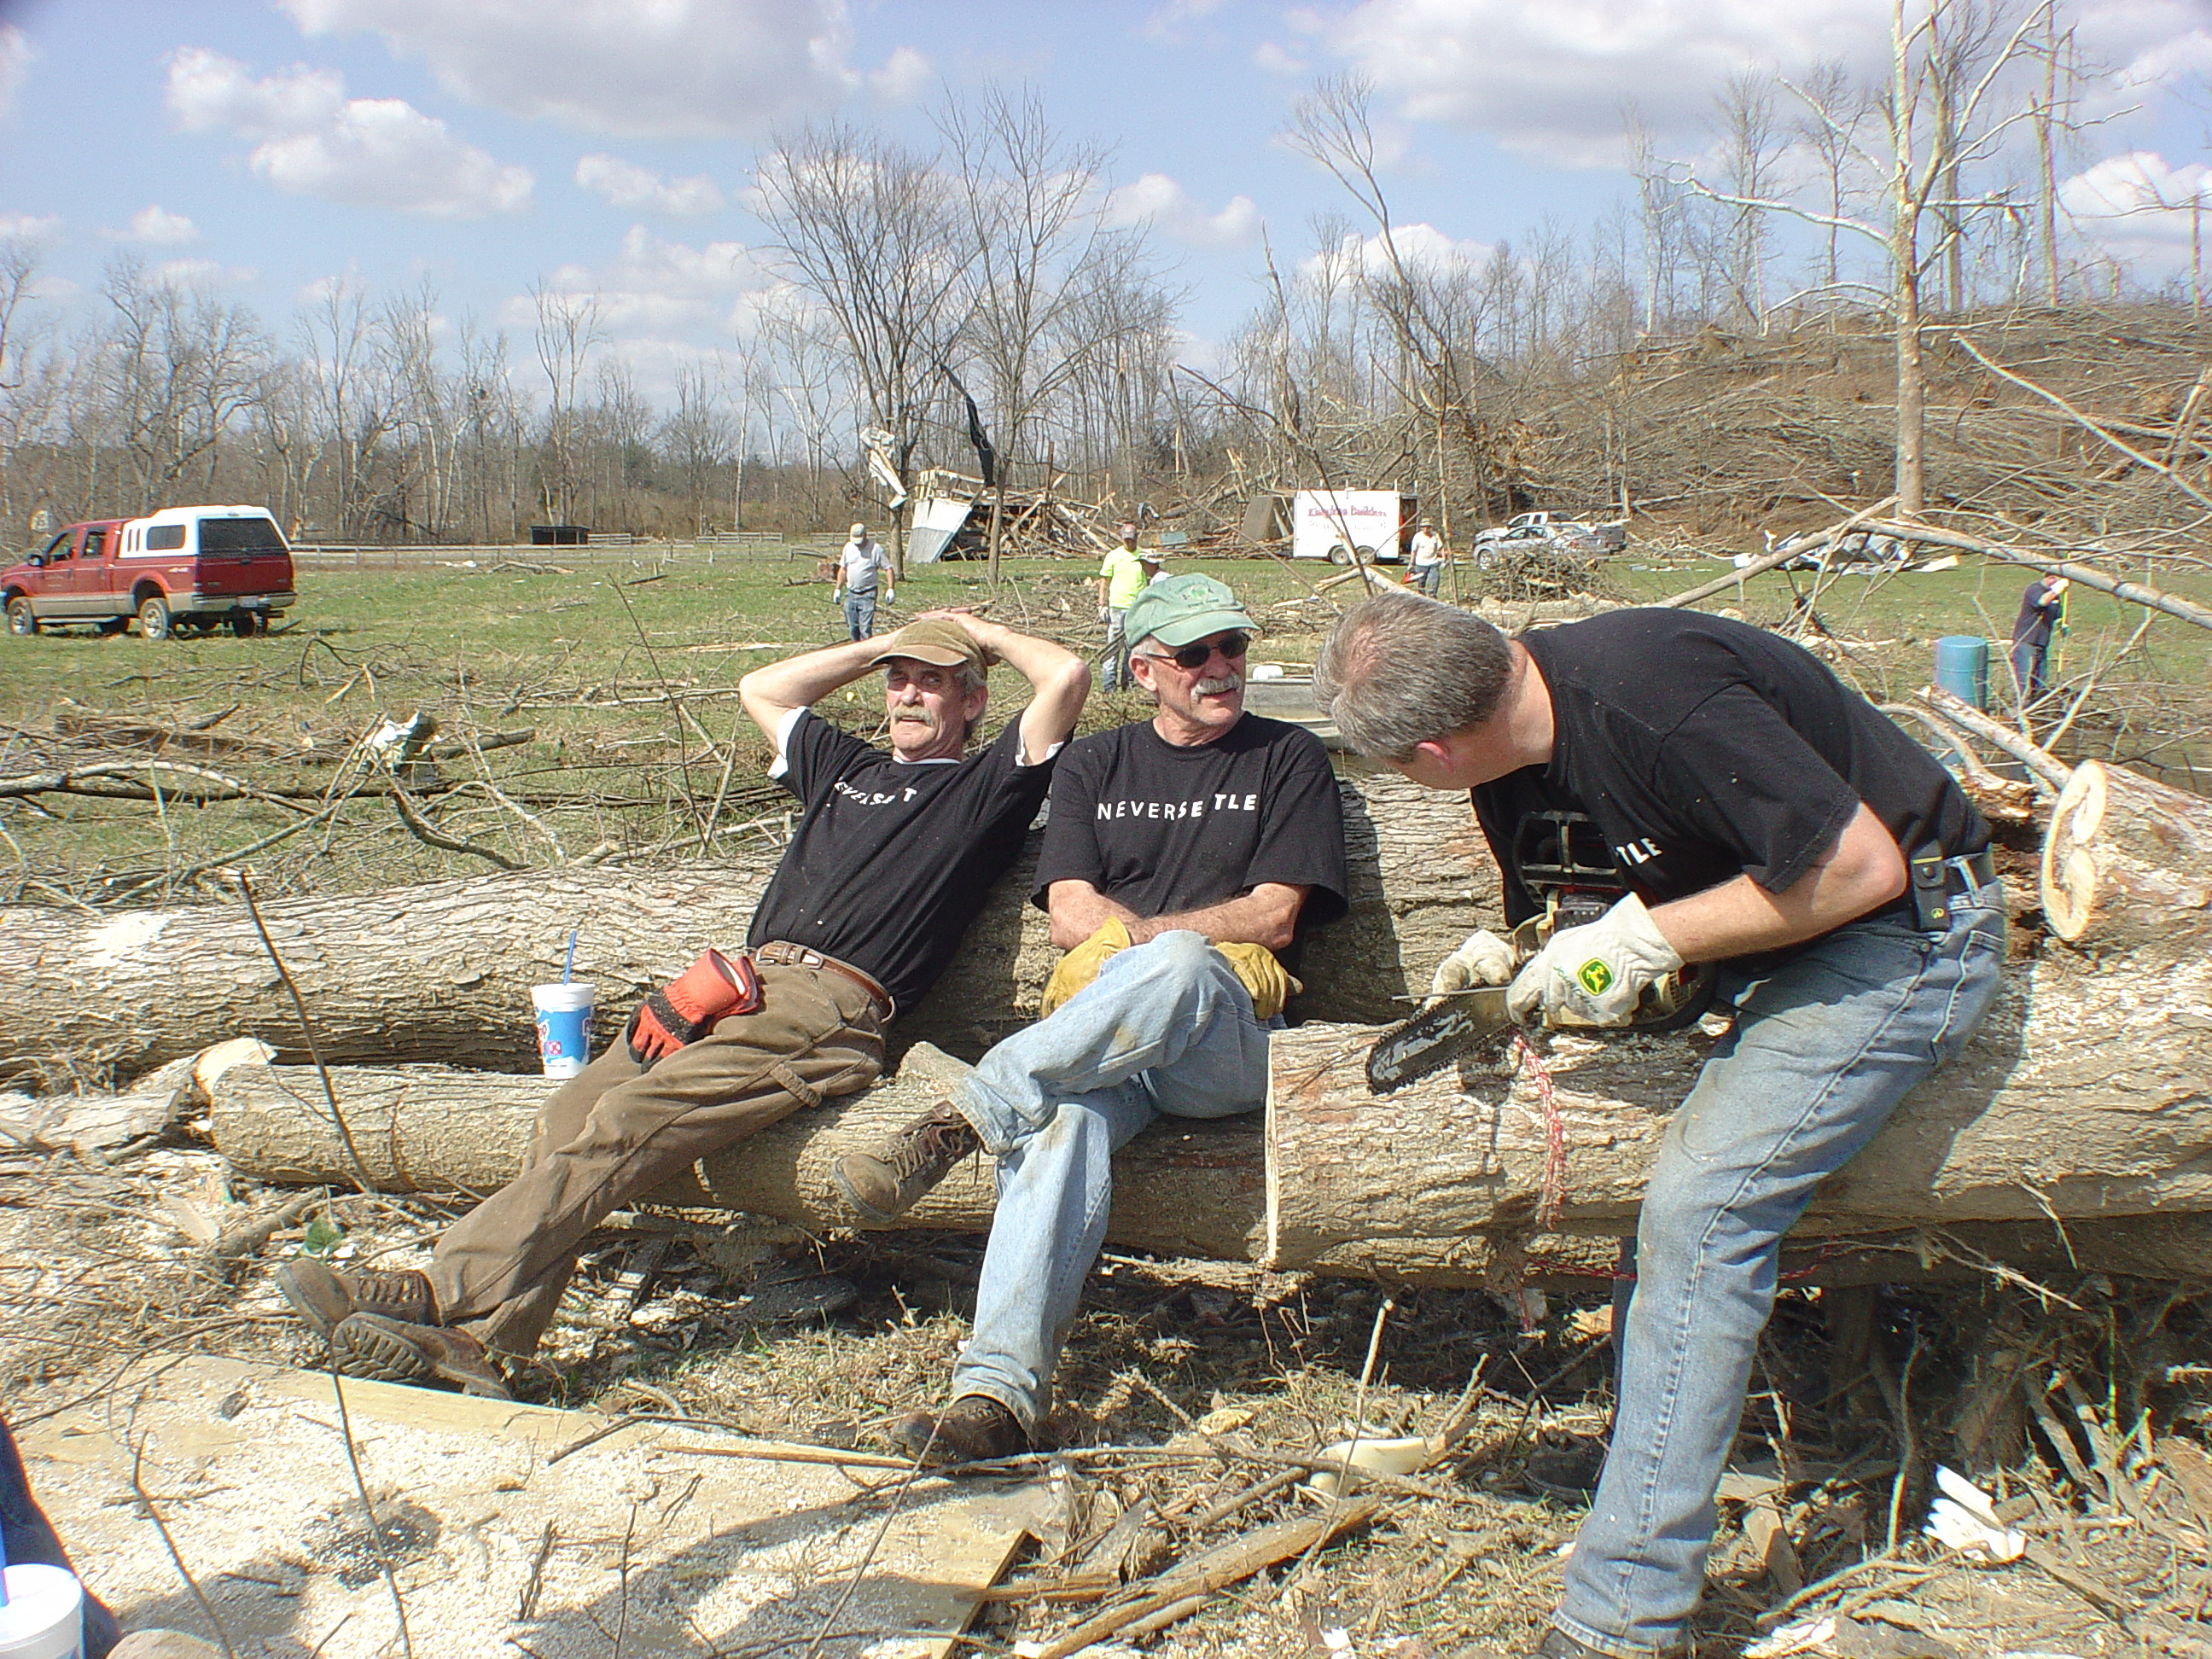 Never Settle volunteers take a quick break before continuing to clear debris.